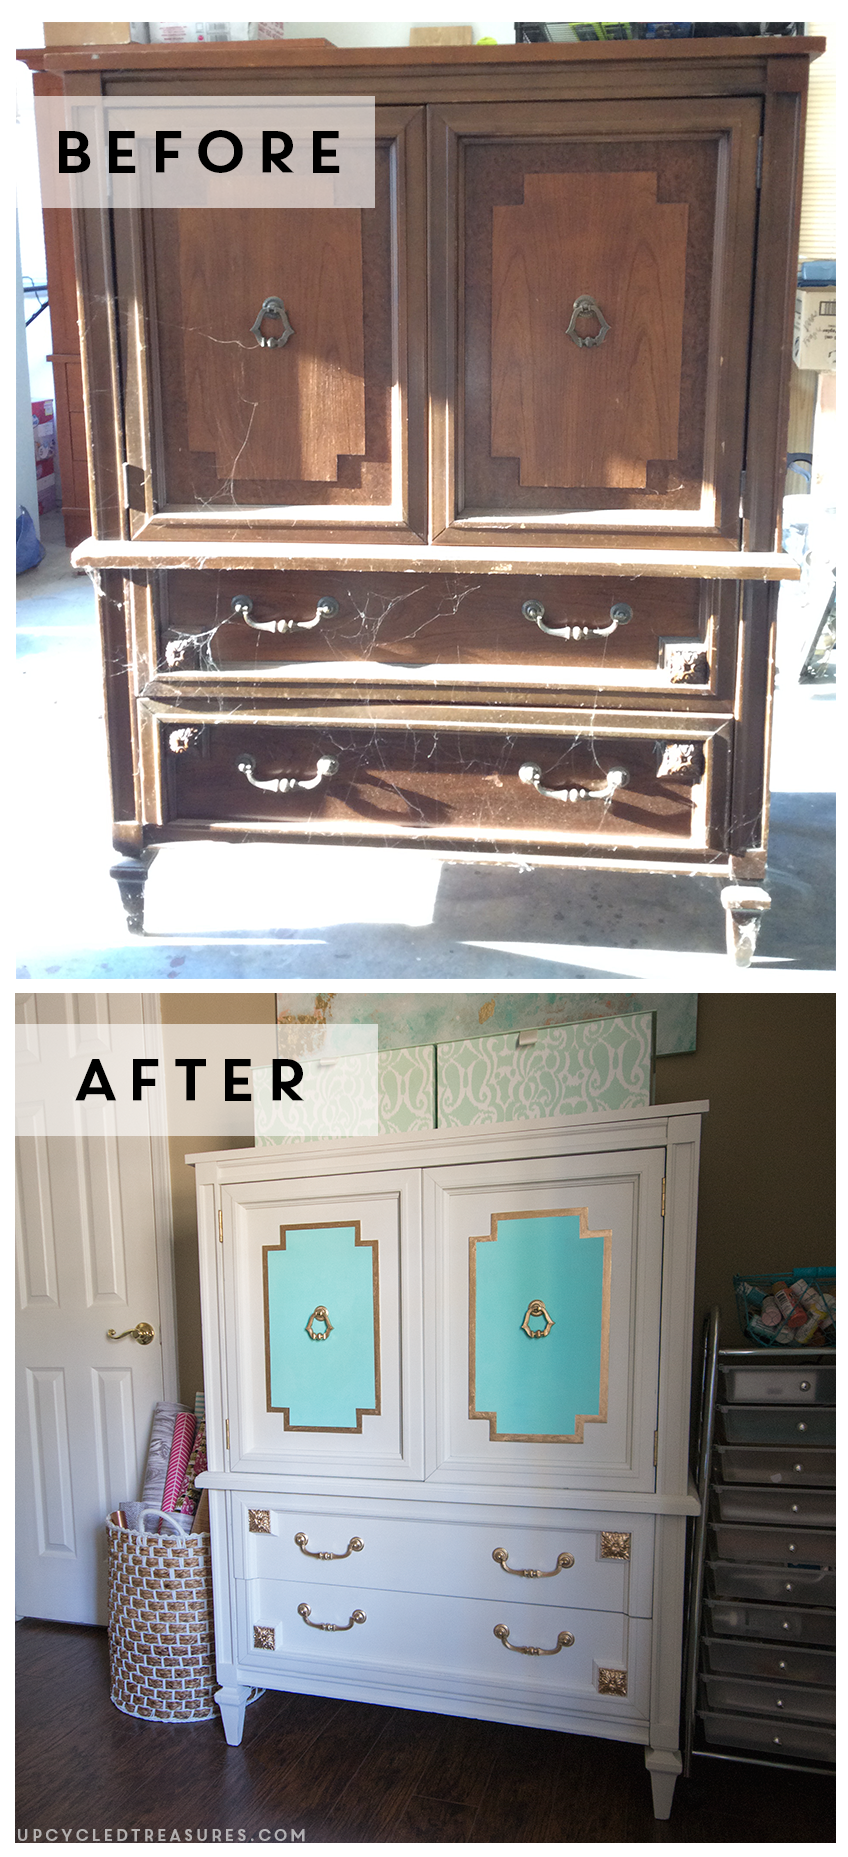 Want to see a piece of furniture completely change? Check out the Before and After photos of this upcycled mid century armoire! MountainModernLife.com